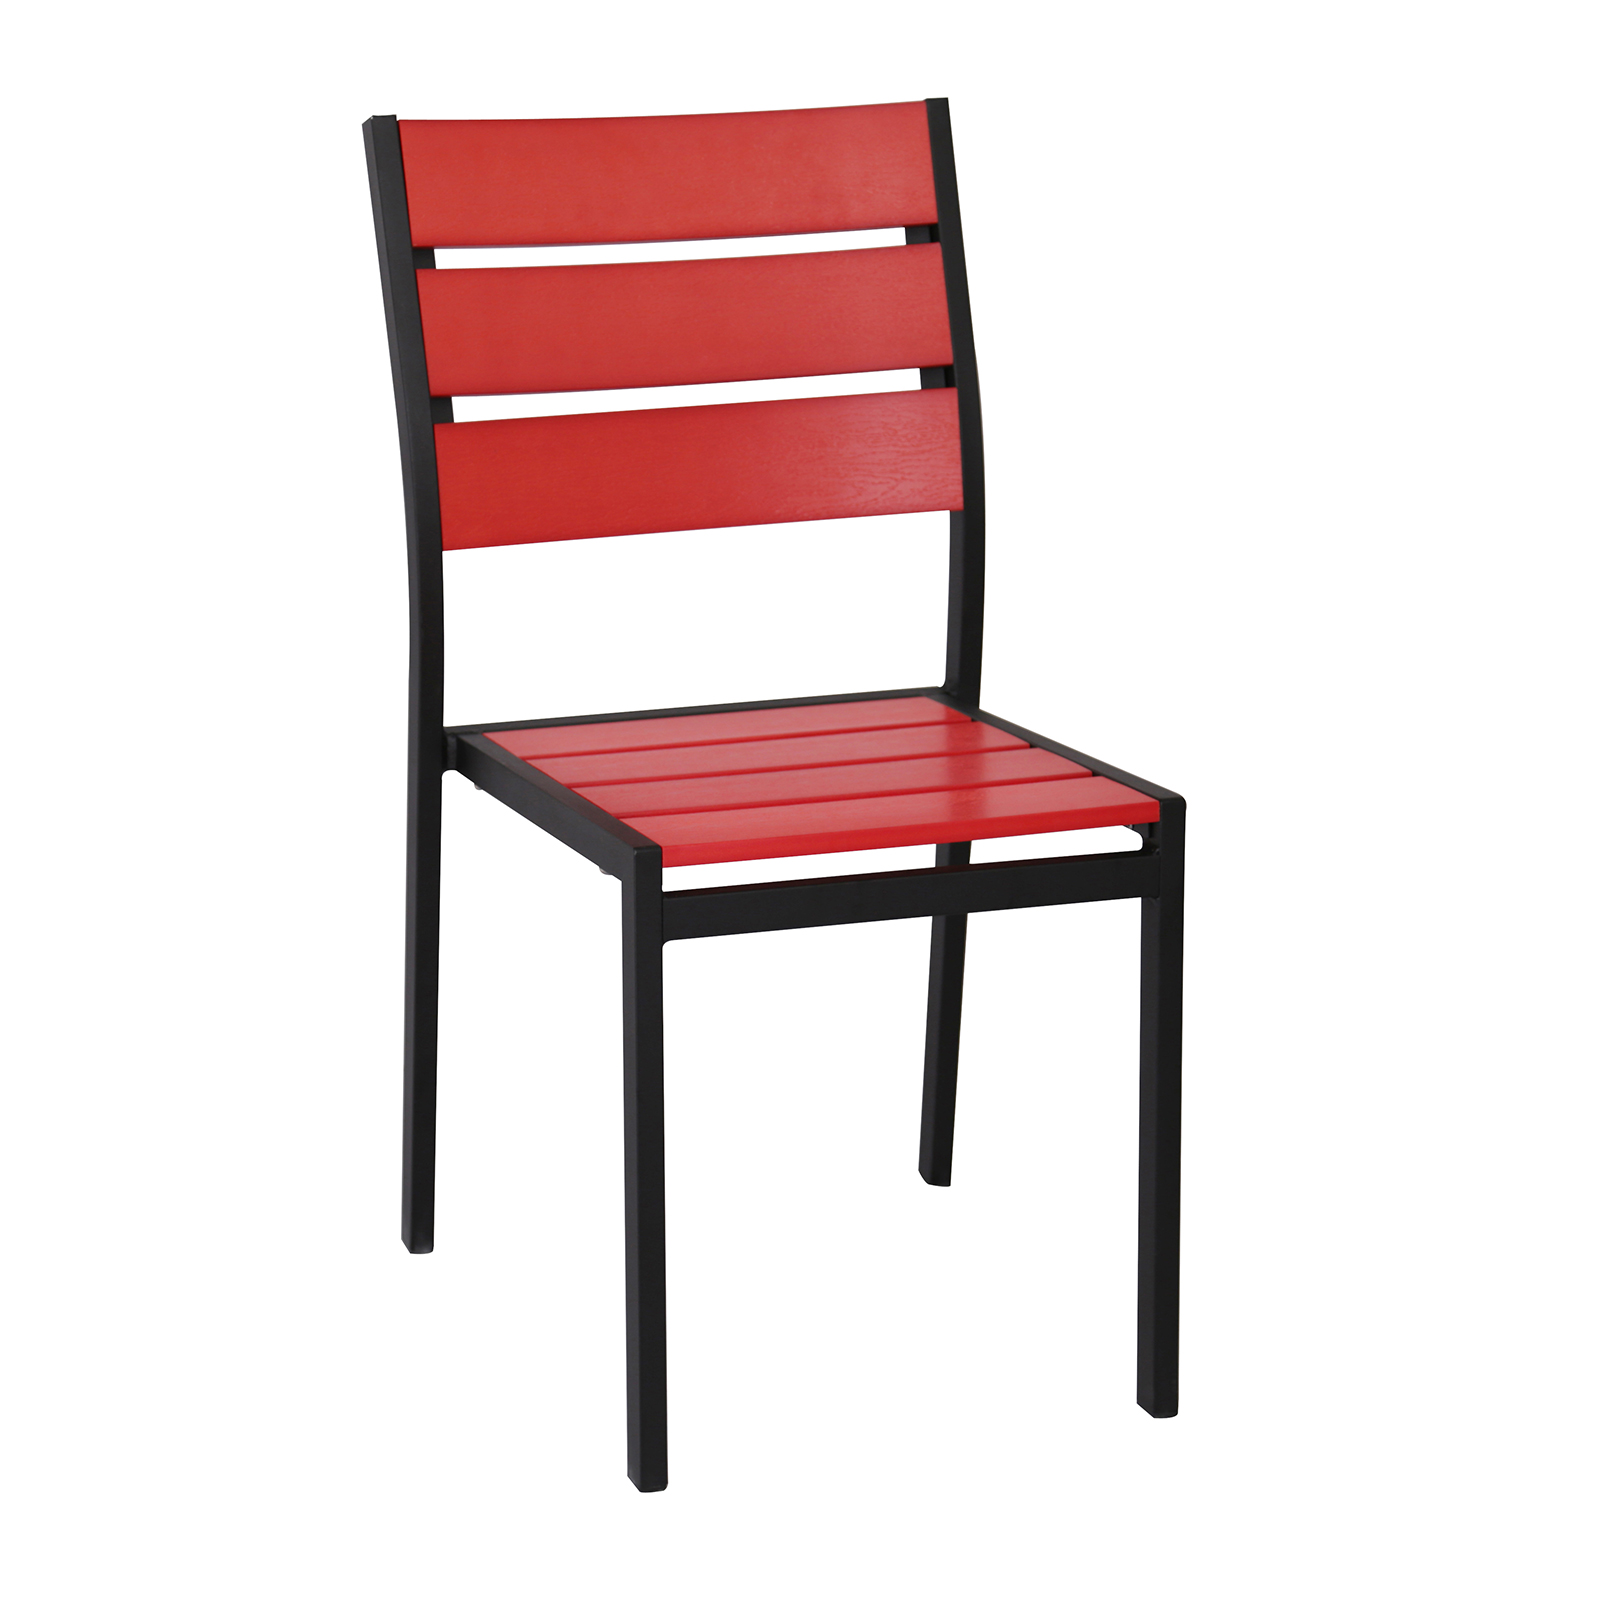 G & A Commercial Seating 8216 chair, side, stacking, outdoor